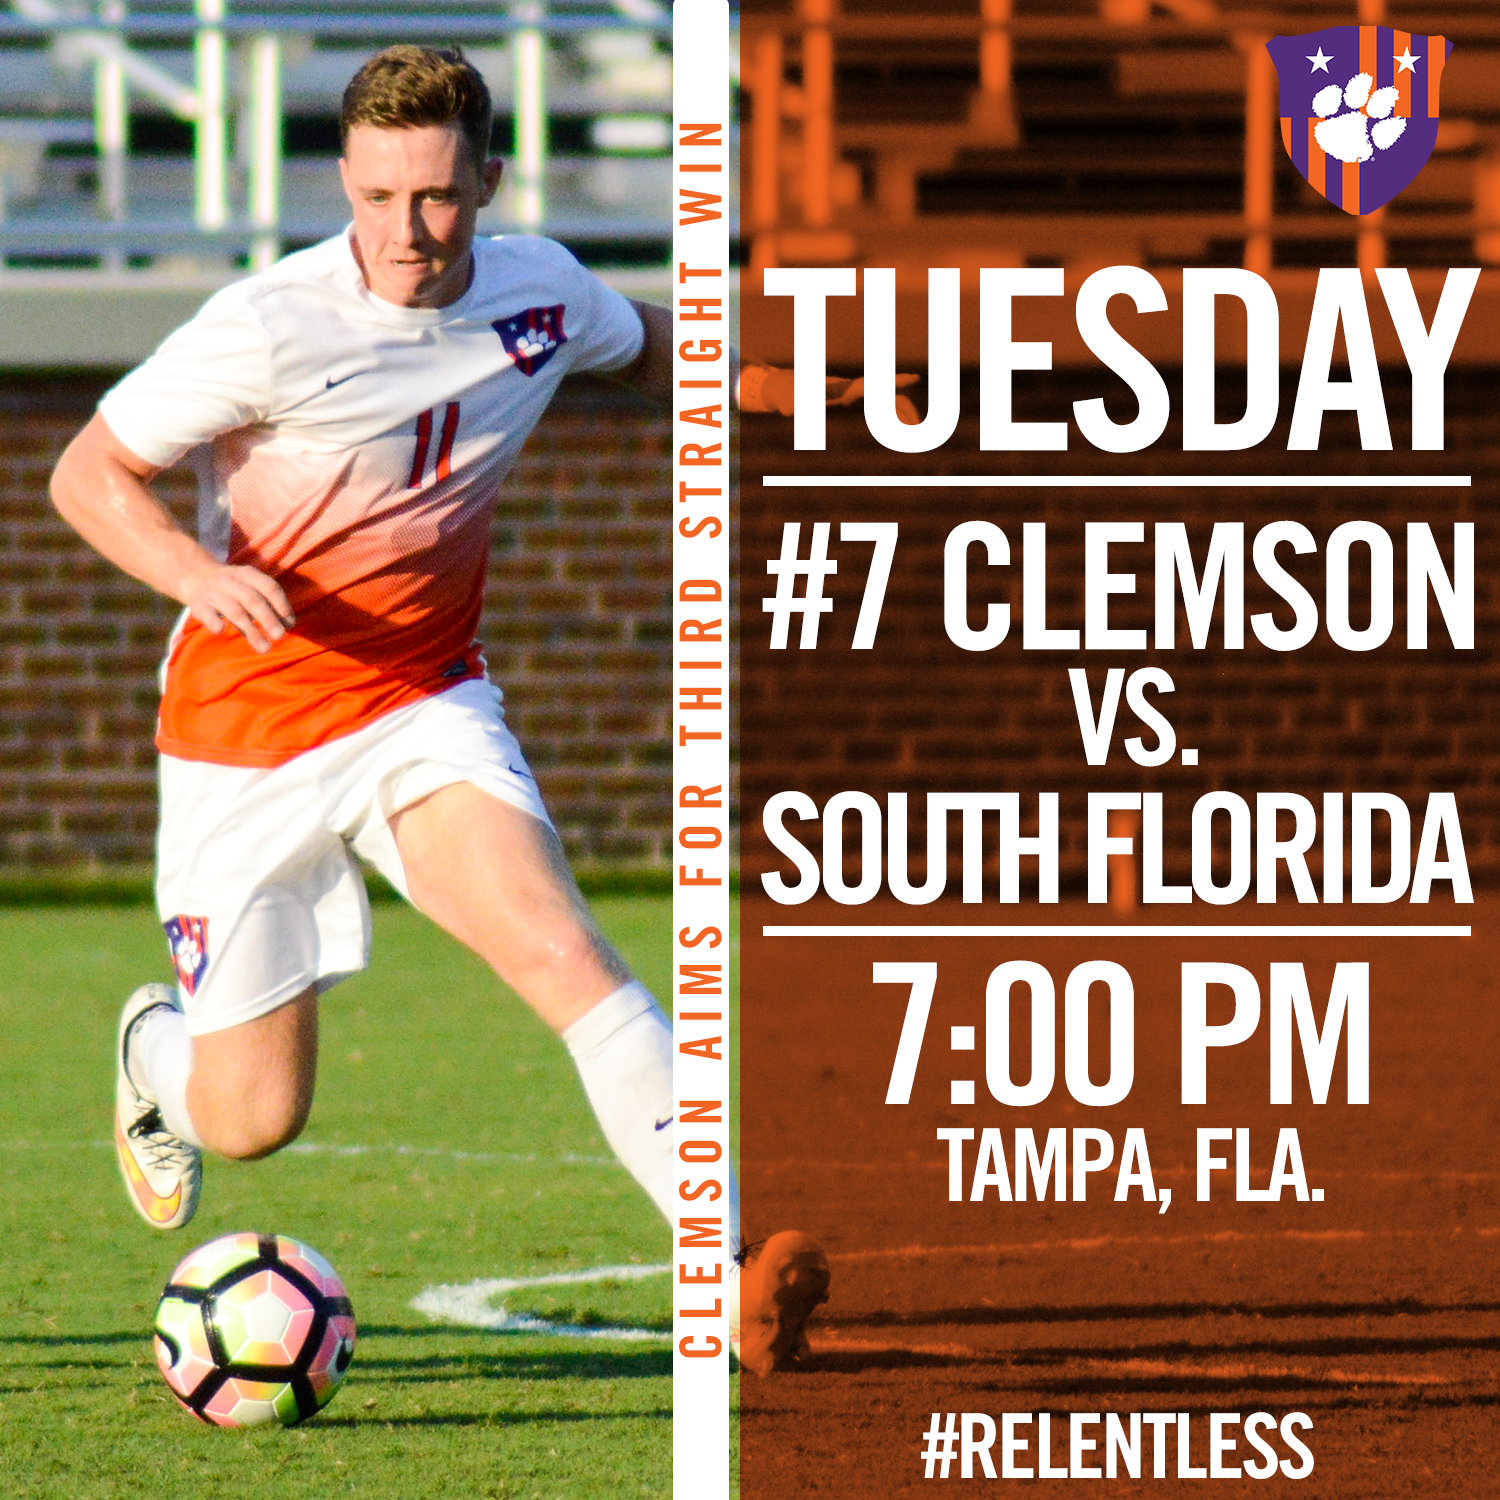 Clemson Heads to Tampa to Face South Florida Tuesday